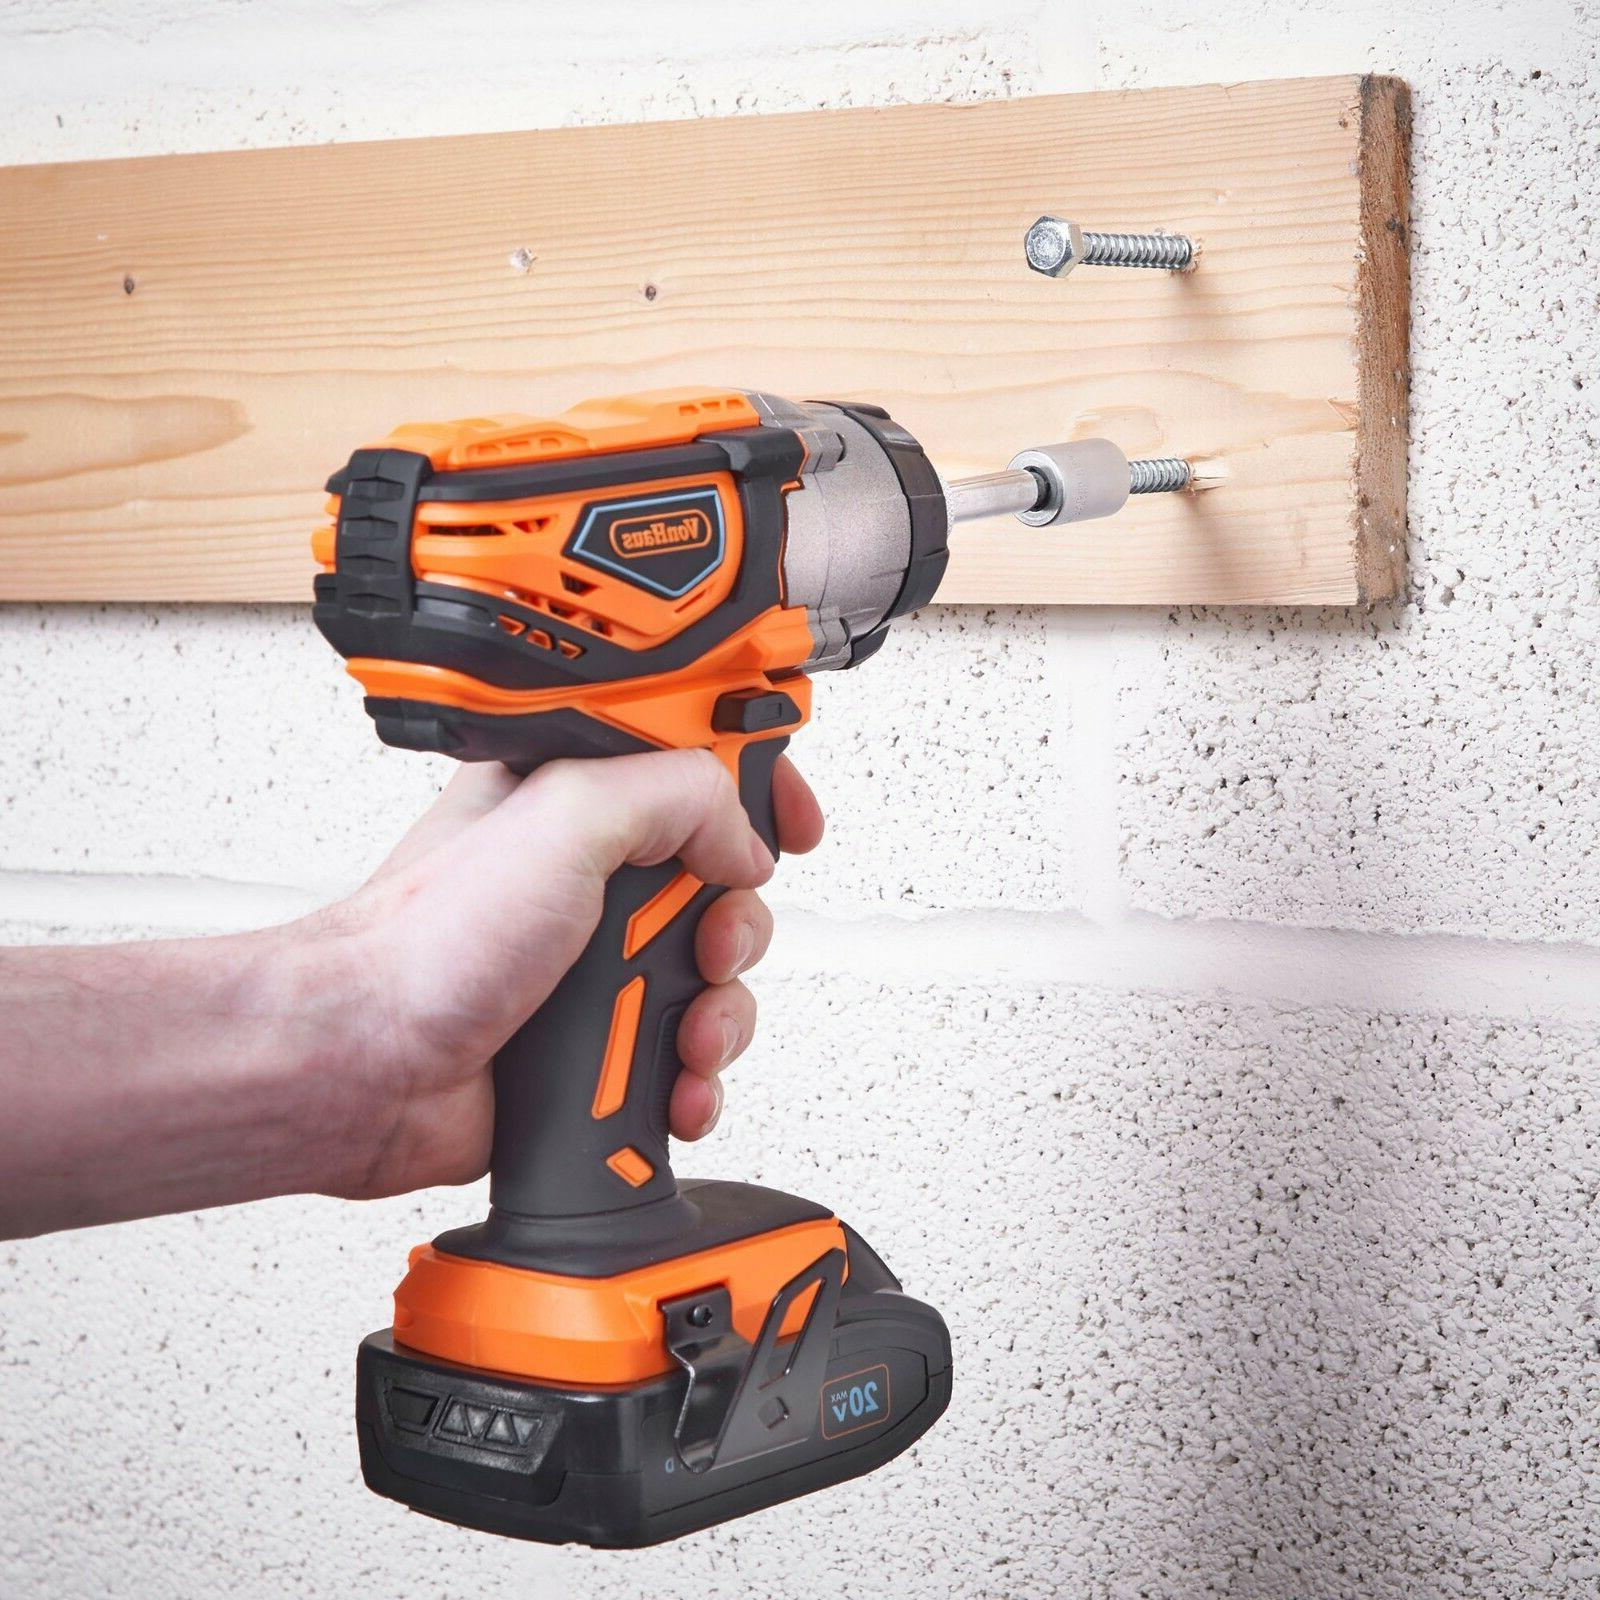 VonHaus 20V 2-TooI Drill Combo Charger